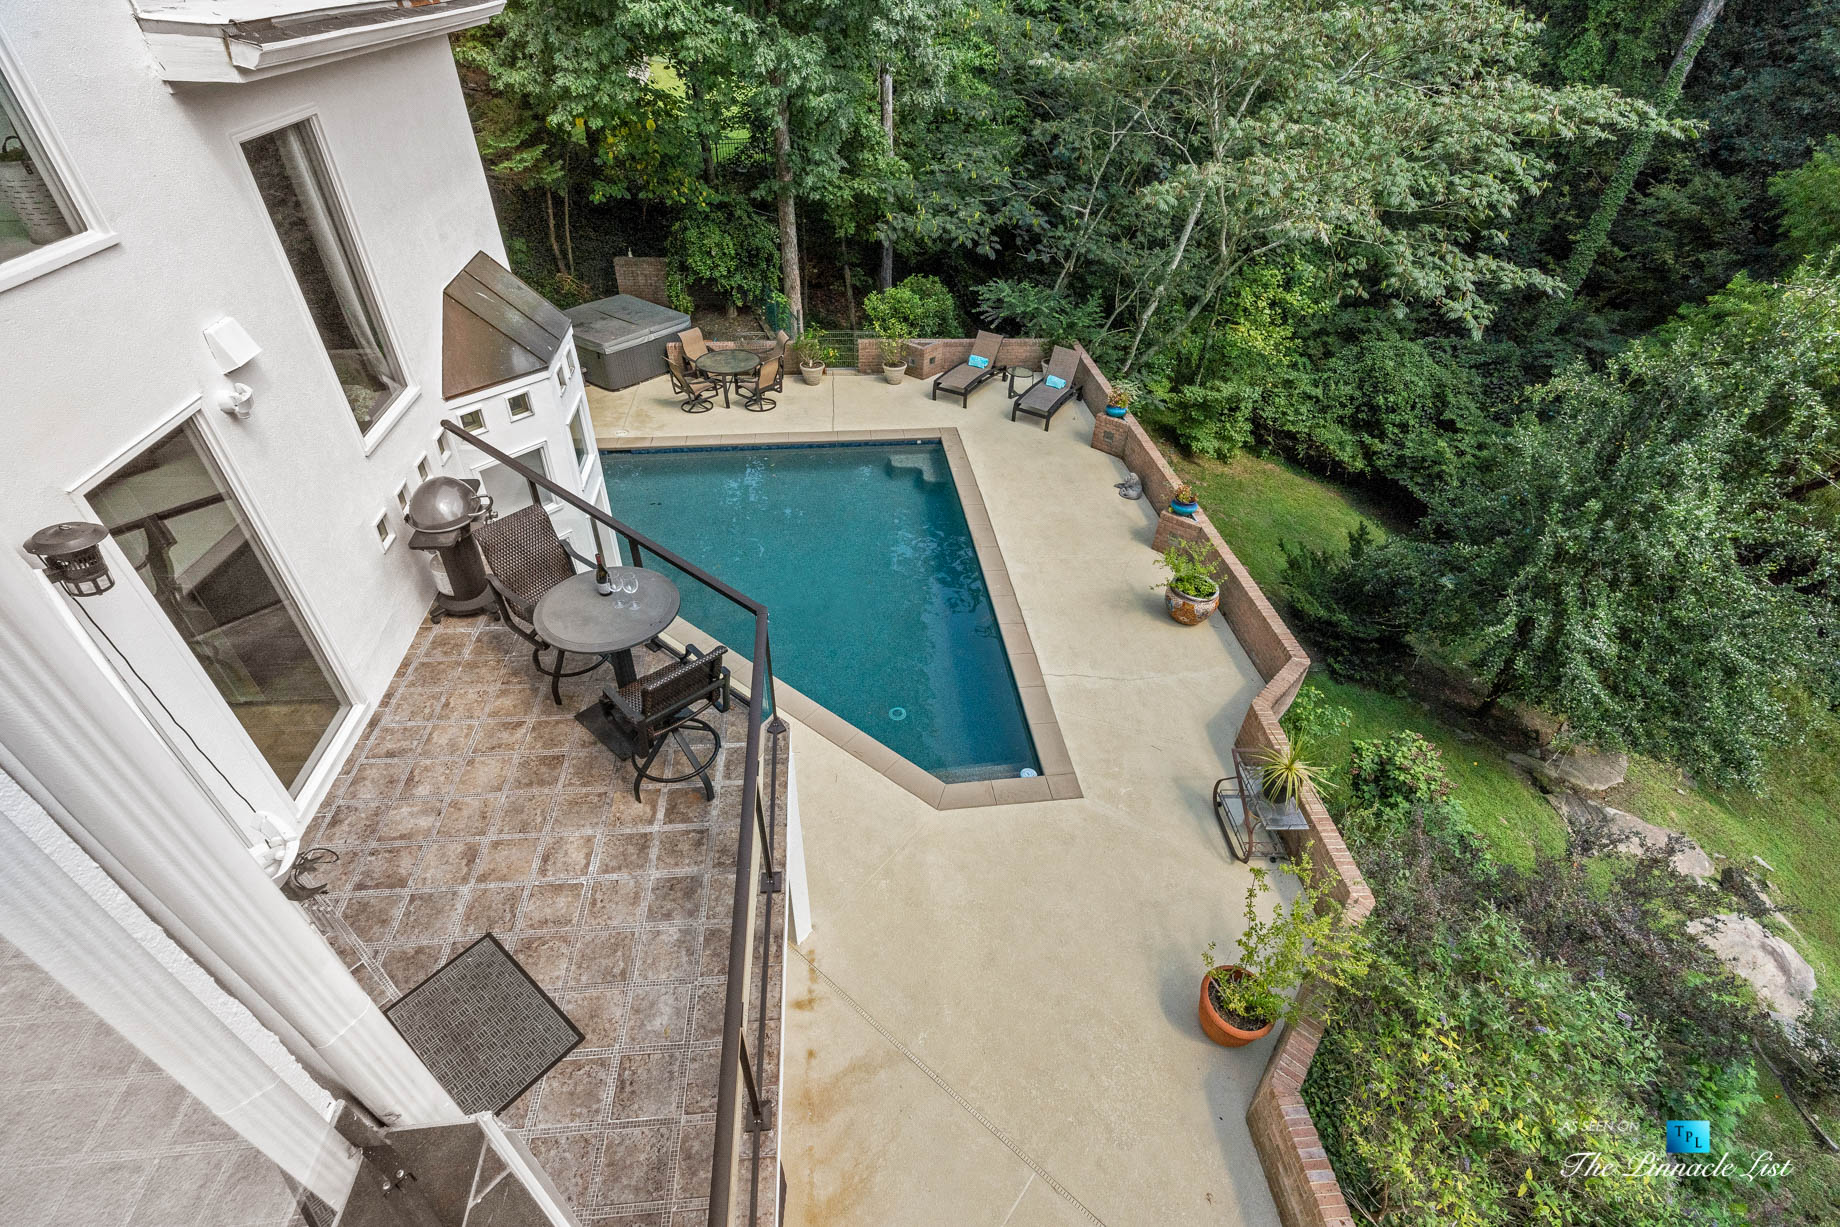 3906 Paces Ferry Rd NW, Atlanta, GA, USA – Master Bedroom Private Deck Overlooking Pool – Luxury Real Estate – Buckhead Home